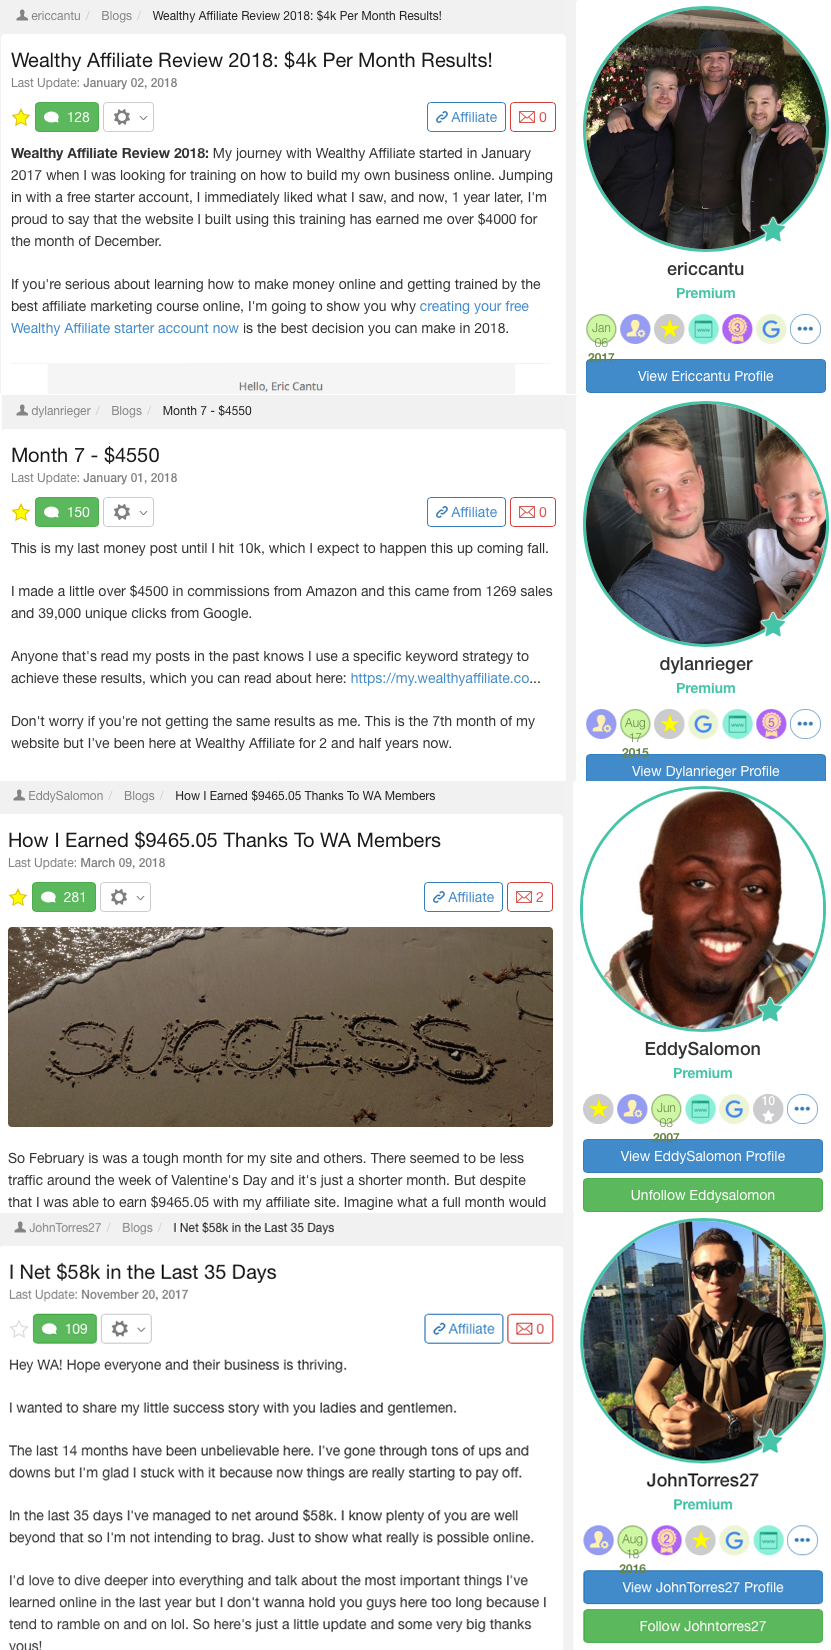 wealthy affiliate marketing success stories